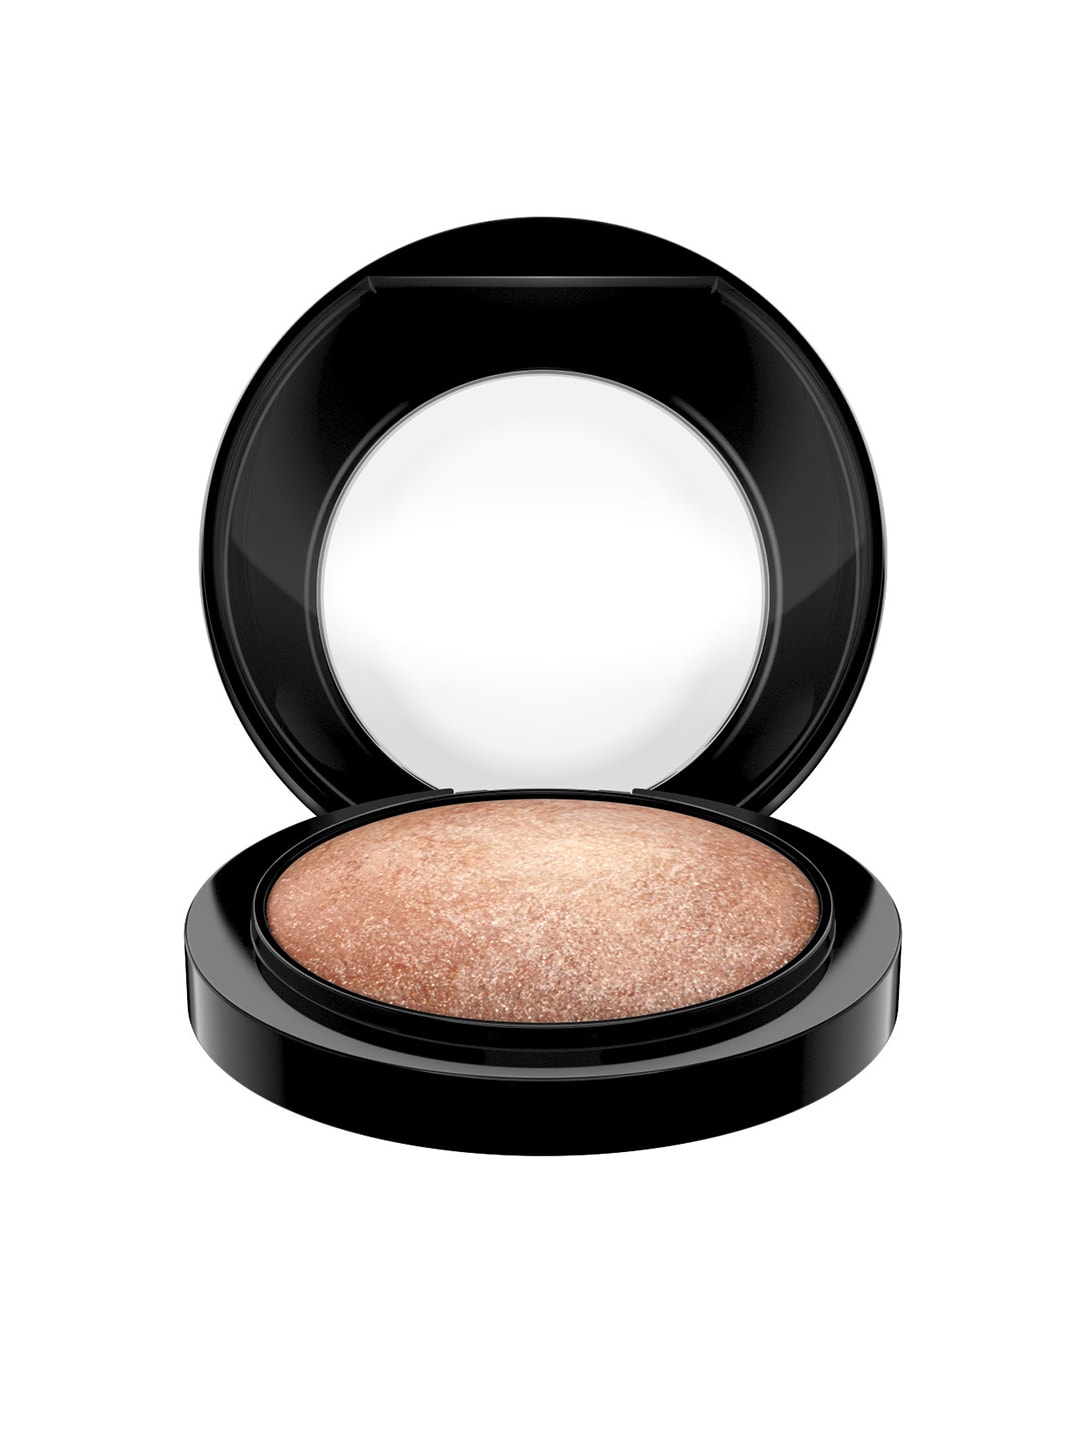 M.A.C Global Glow Mineralize Skinfinish Compact image